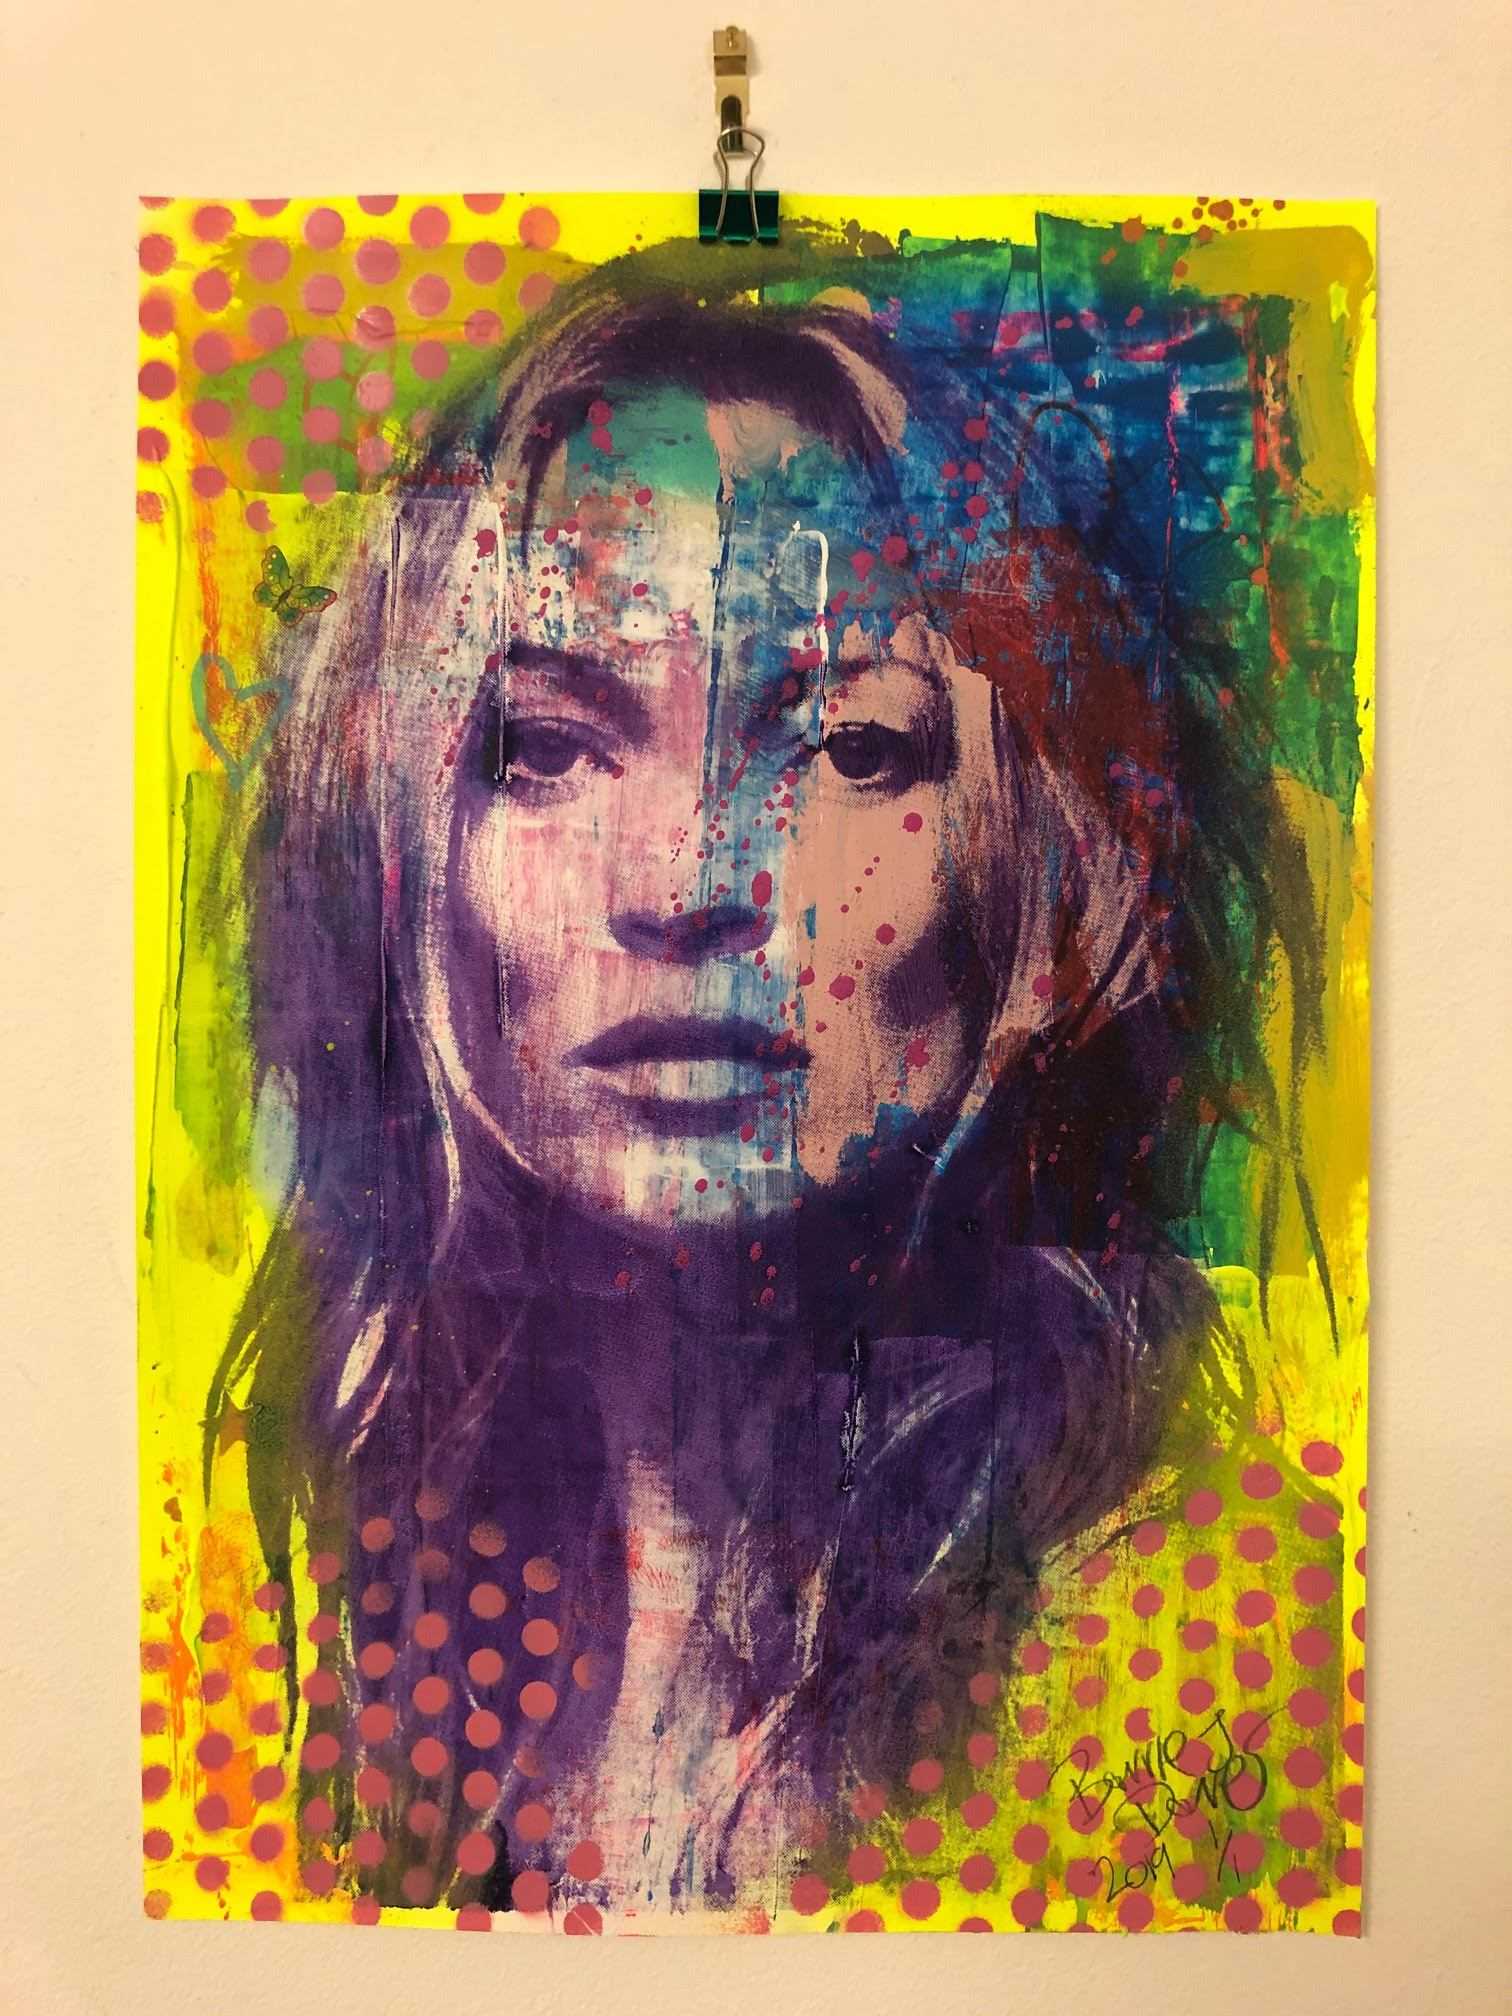 Super Kate Print by Barrie J Davies 2019 - unframed Silkscreen print on paper (hand finished) edition of 1/1 - A3 size 29cm x 42cm. Urban Pop Art and Street art inspired Artist based in Brighton England UK - Shop Pop Art Paintings, Street Art Prints & collectables.